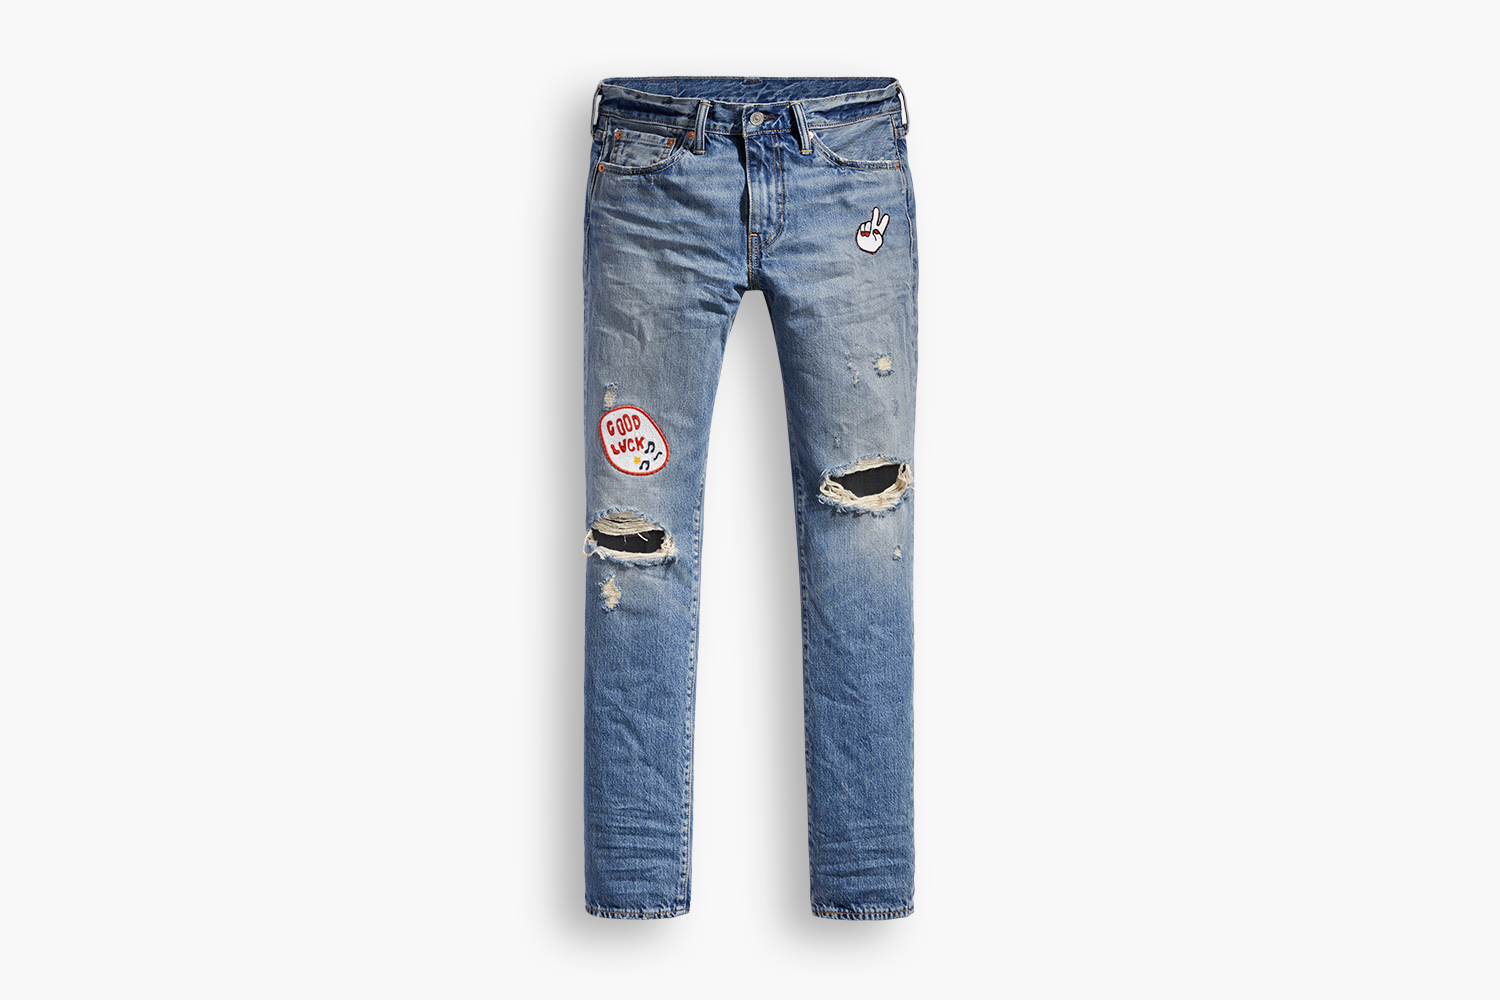 levis-2017-chinese-new-year-collection-11